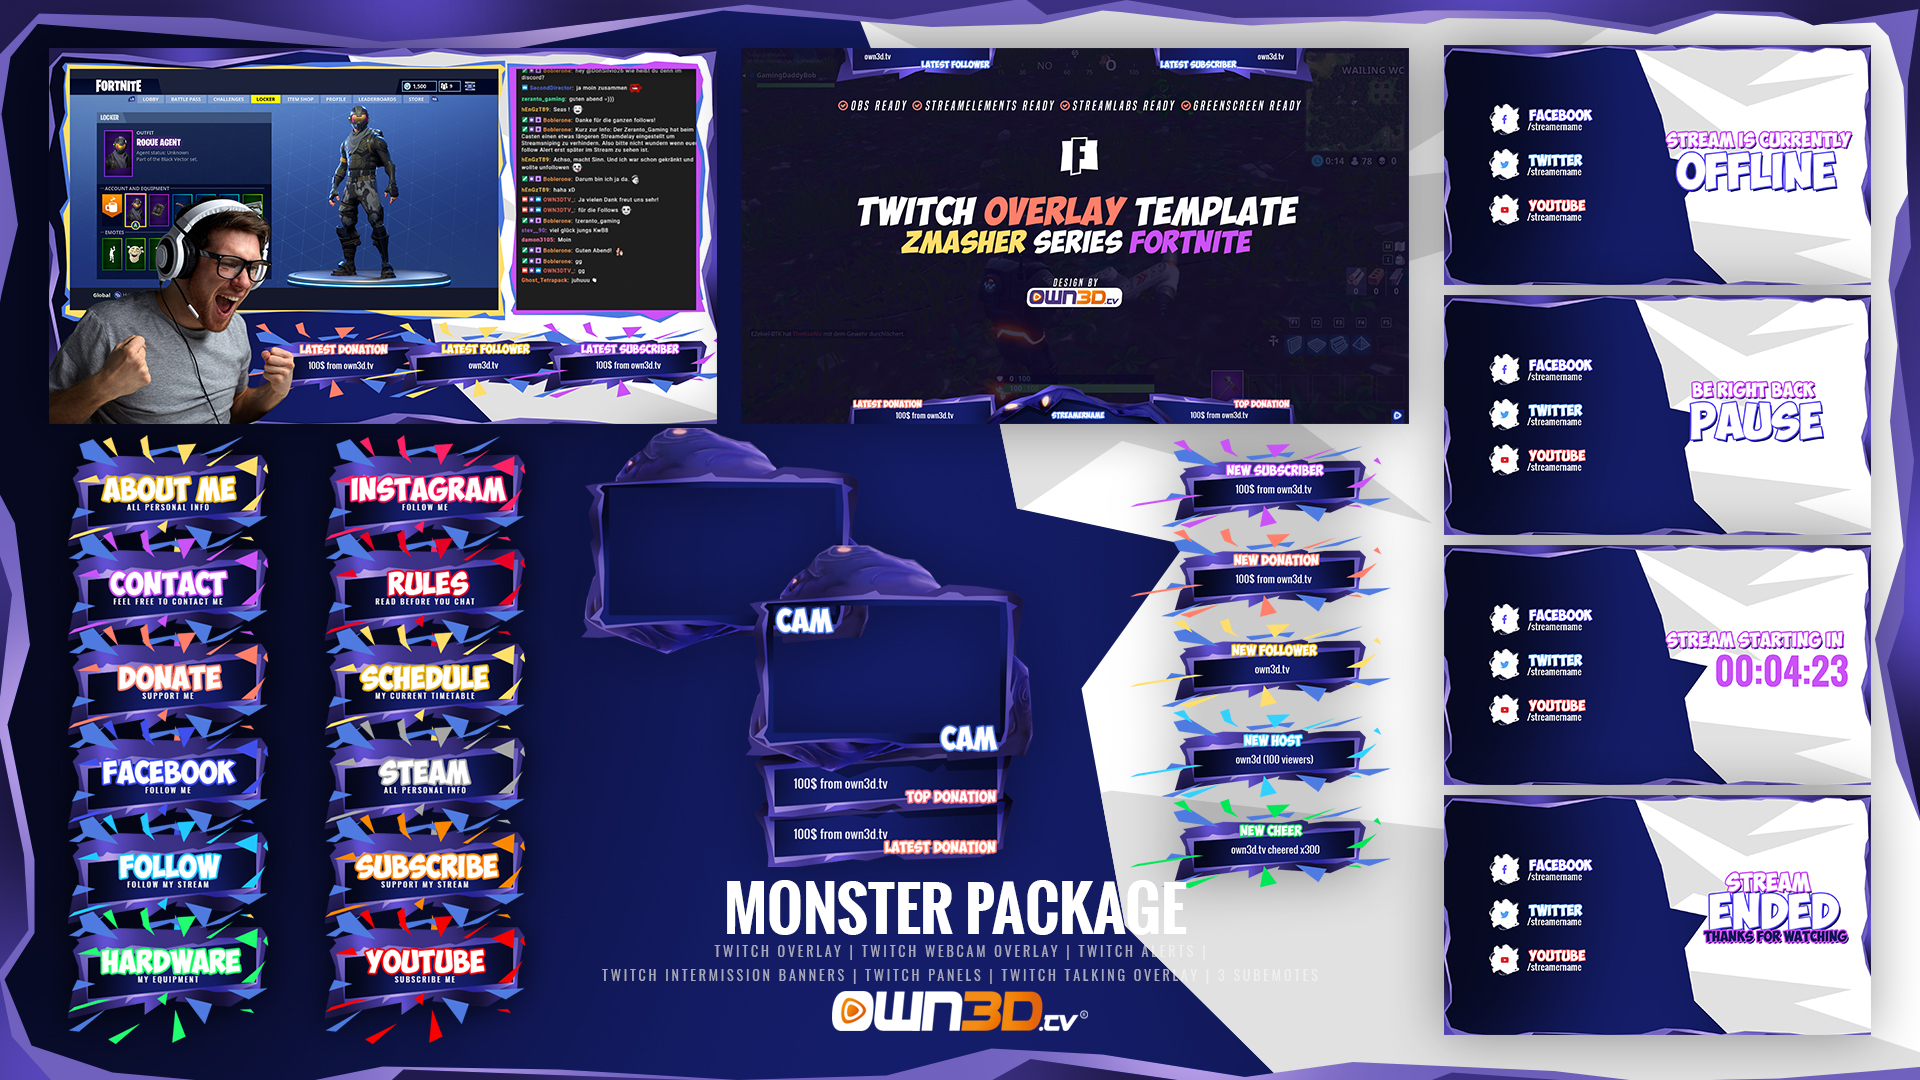 zmasher-series-twitch-overlay-package-03-monster.jpg